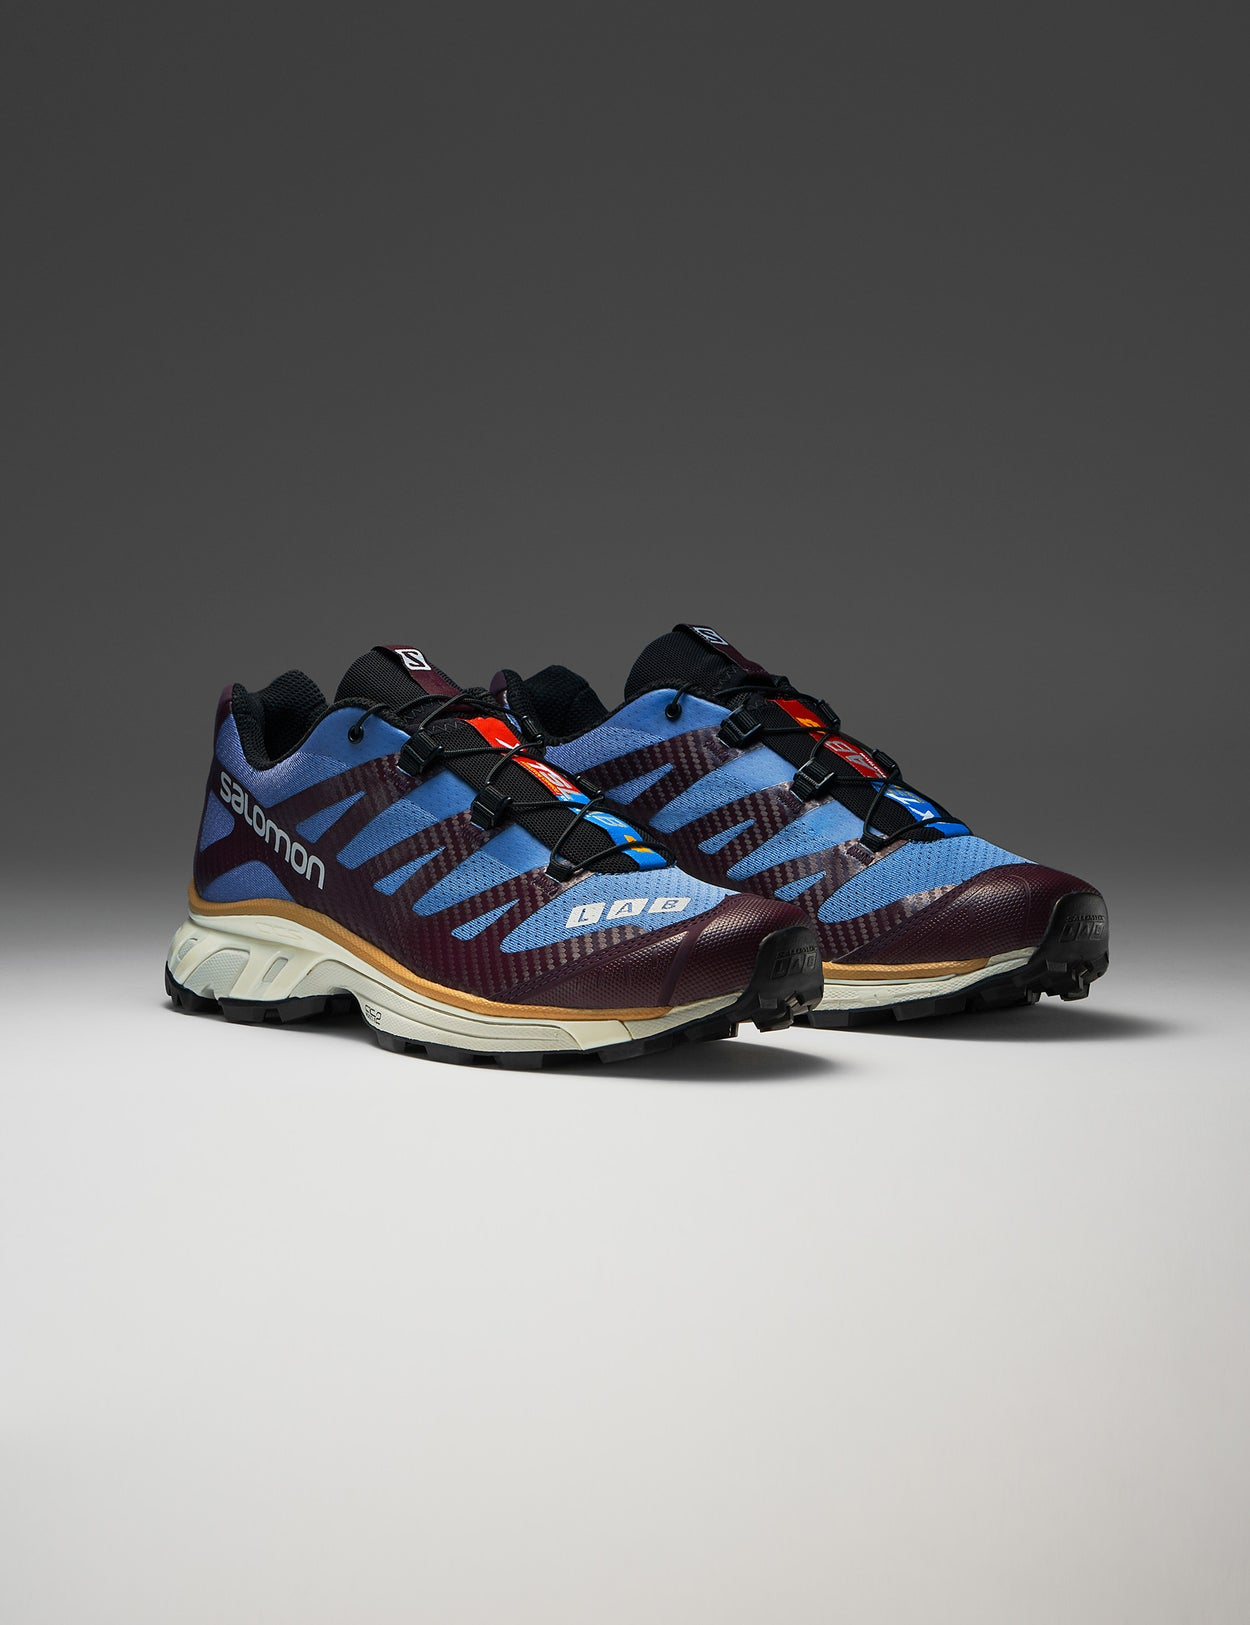 BLUE AND BROWN XT-4 ADV SNEAKERS